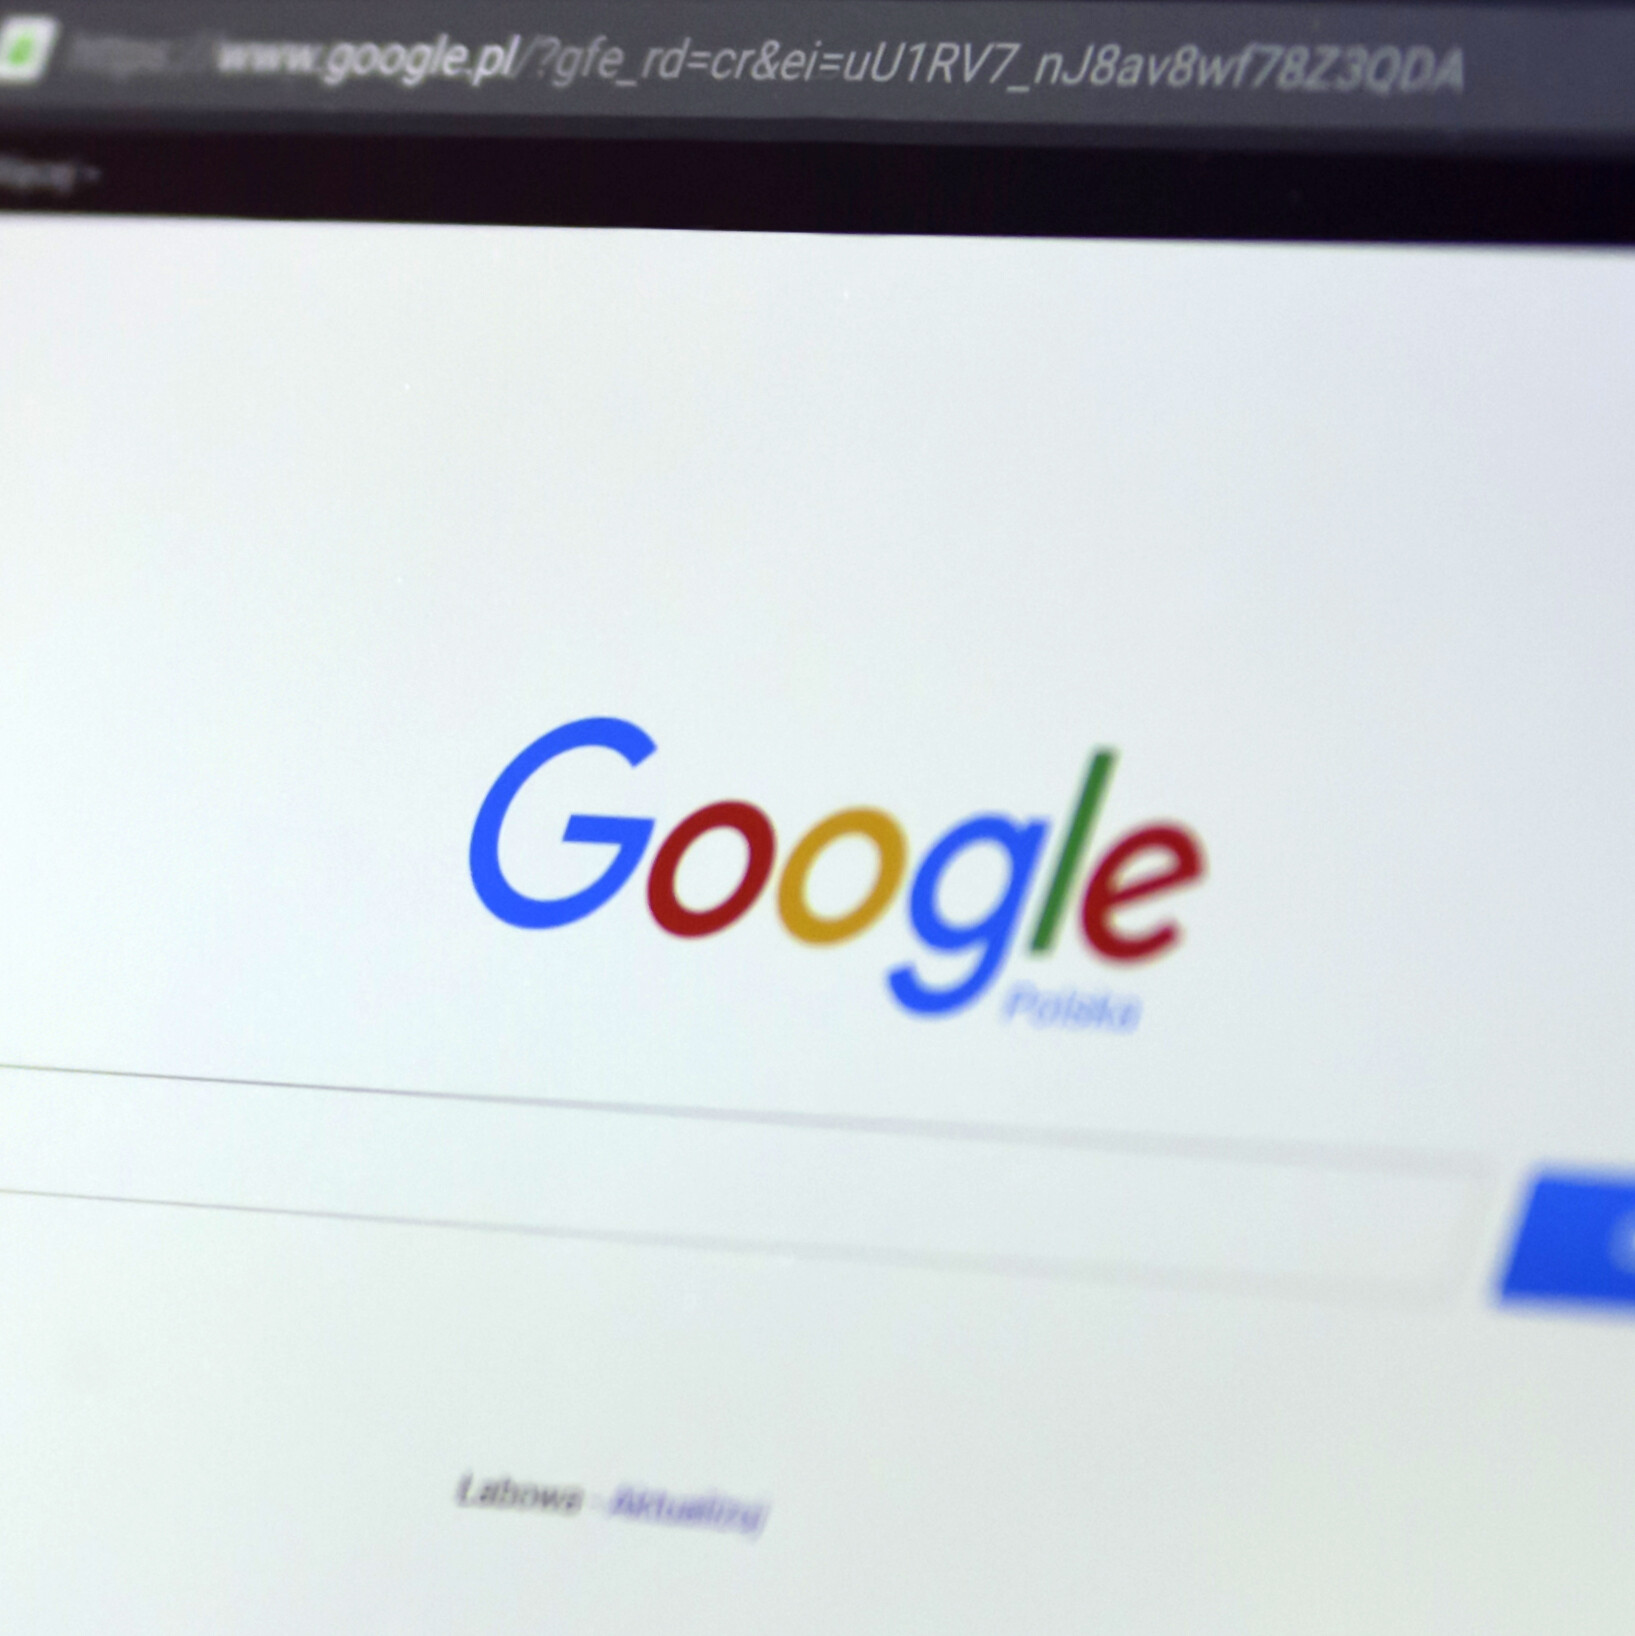 What is the best search engine in Russia? - Quora